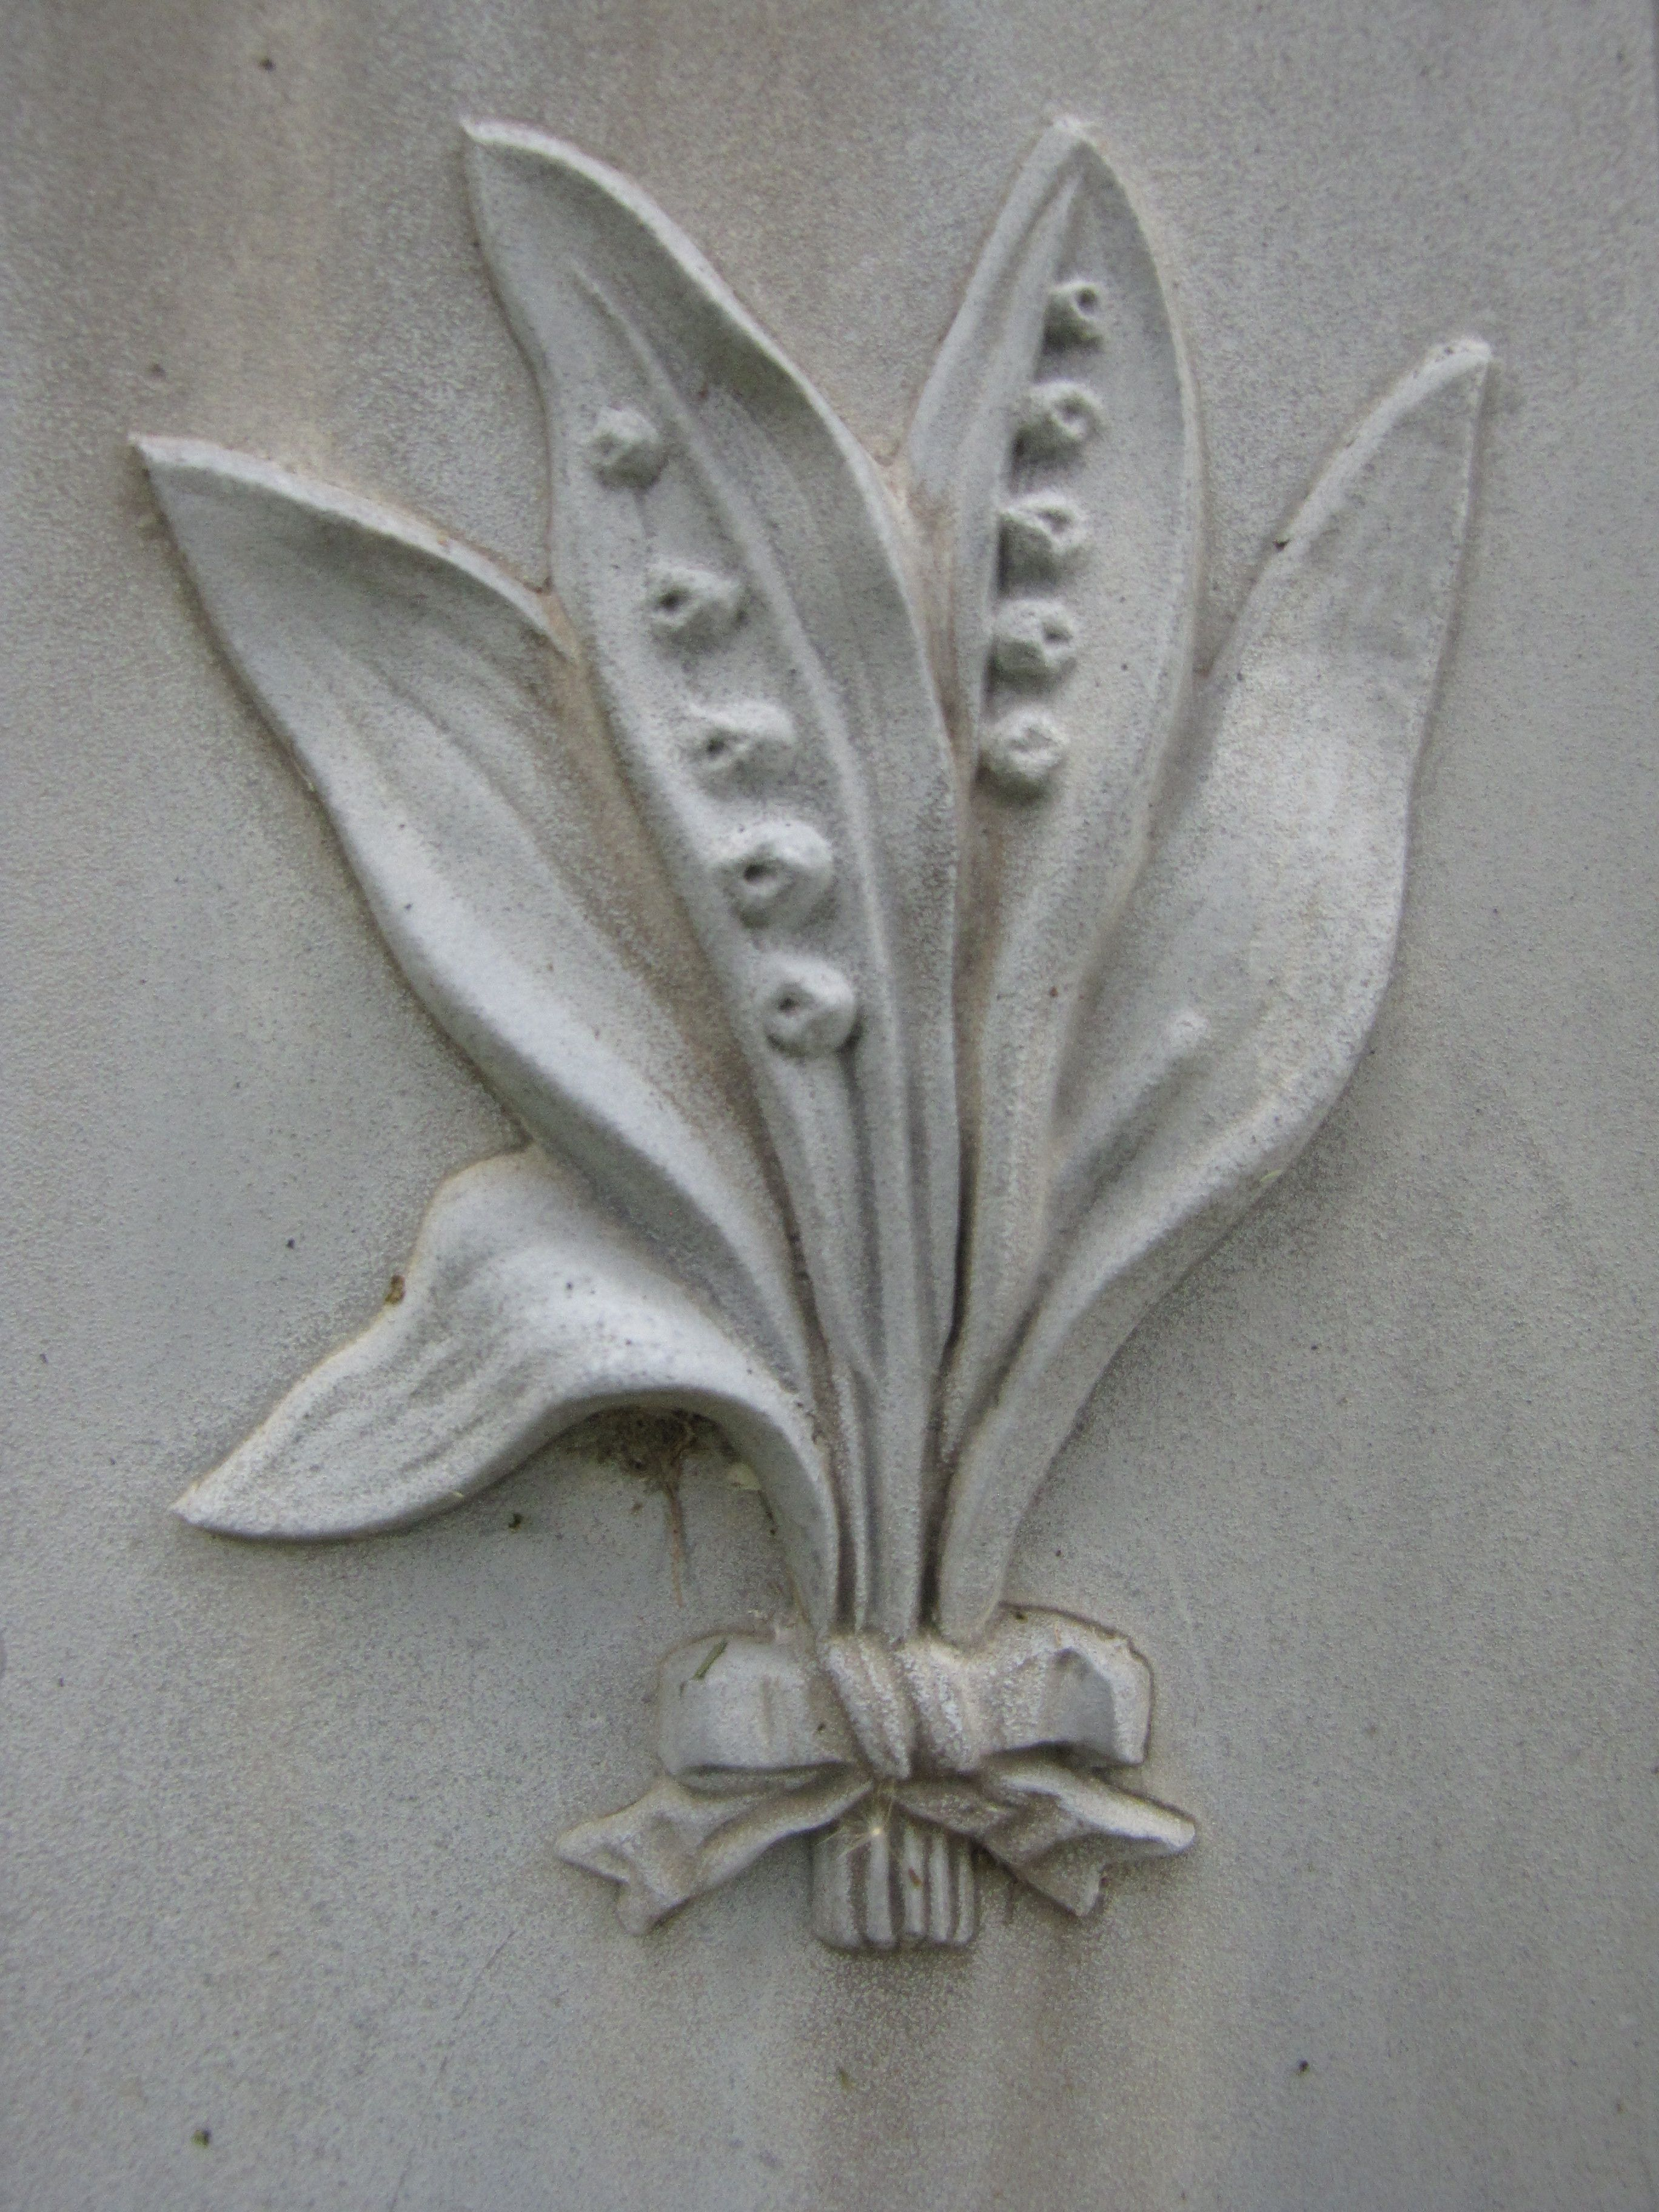 Funerary Symbols. Lily of the Valley. Lily of the valley